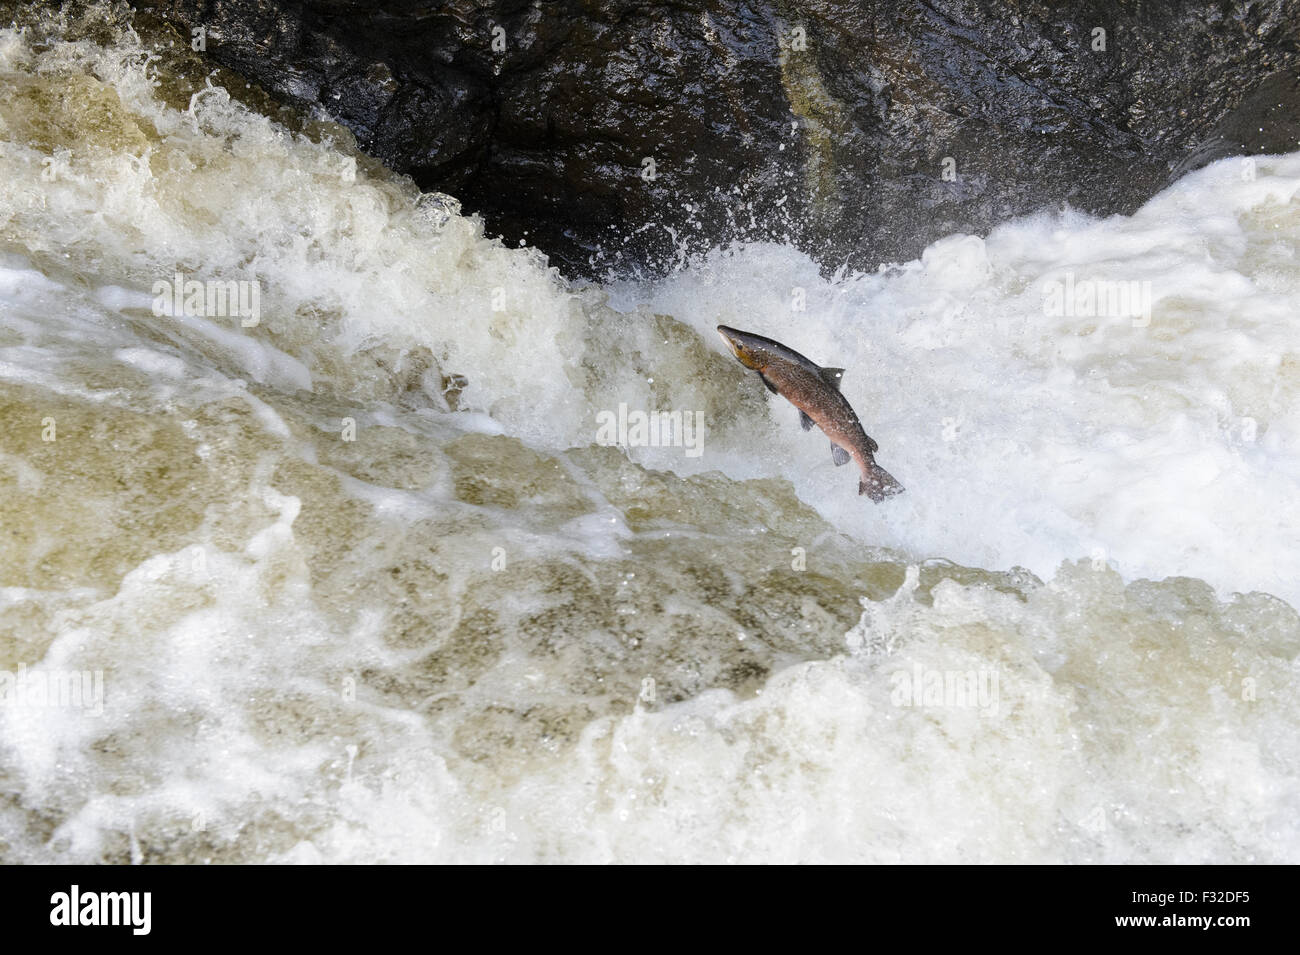 Atlantic Salmon (Salmo salar) adult, leaping up waterfall, moving upstream to spawning ground, Buchanty Spout, River - Stock Image